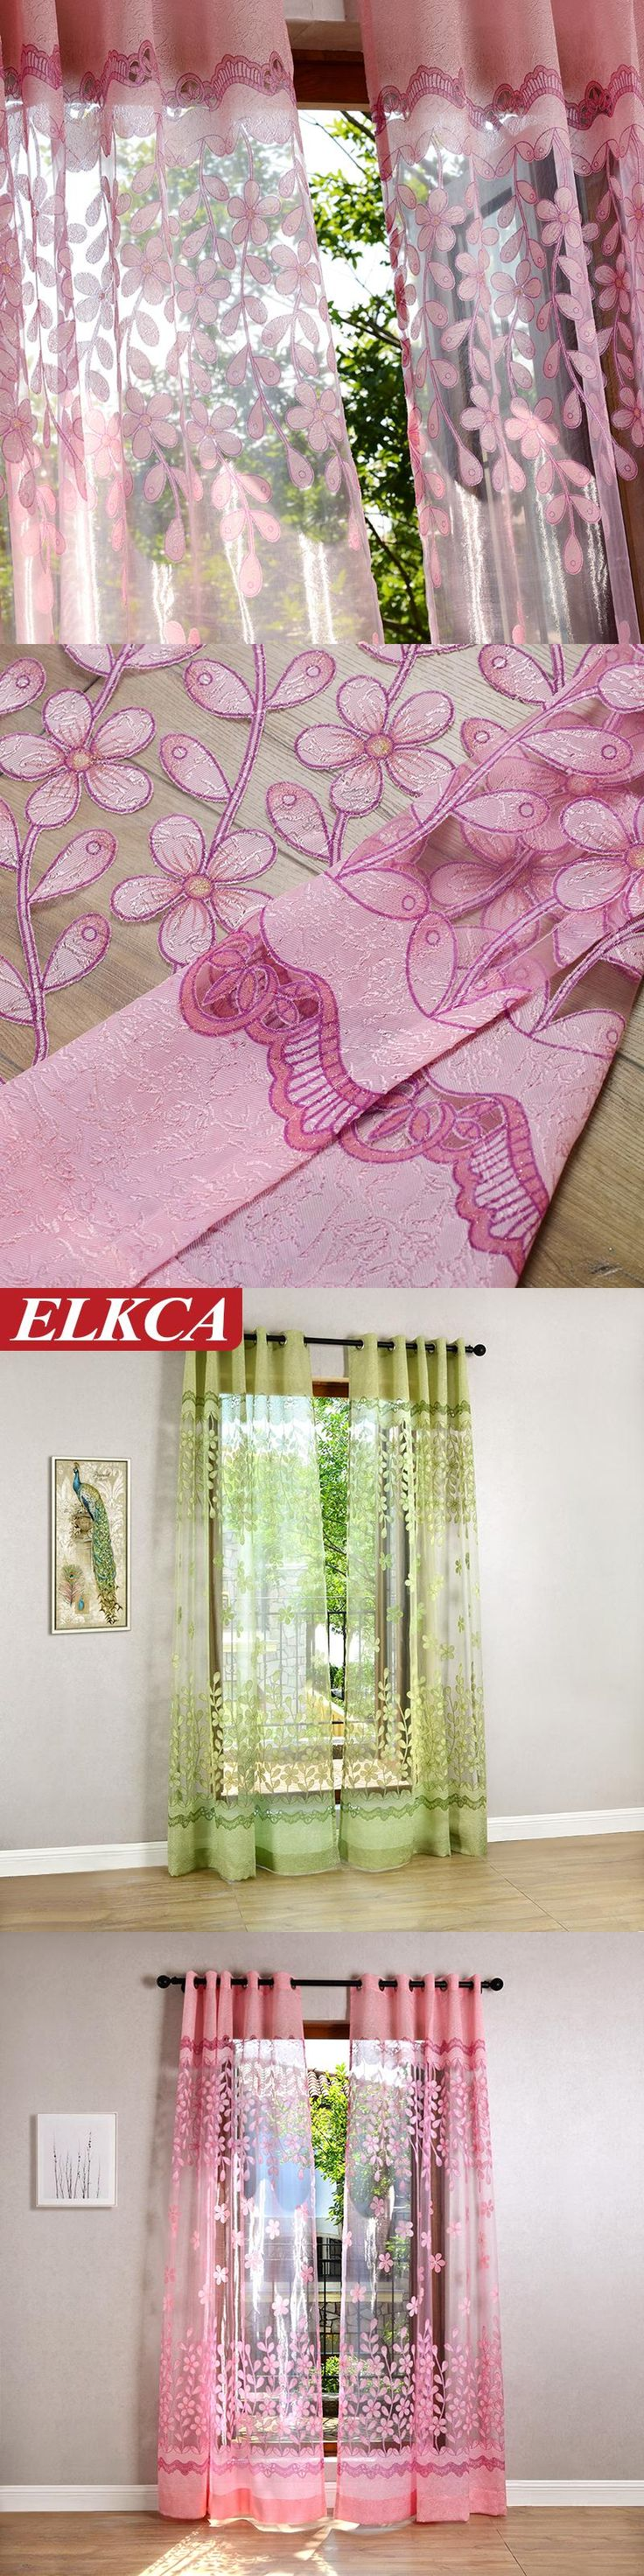 European Sheer Luxury Window Tulle Curtains for Home Drapery Cloth Fancy Window Royal Fresh Style Tulle Curtain Fantasy Flowers